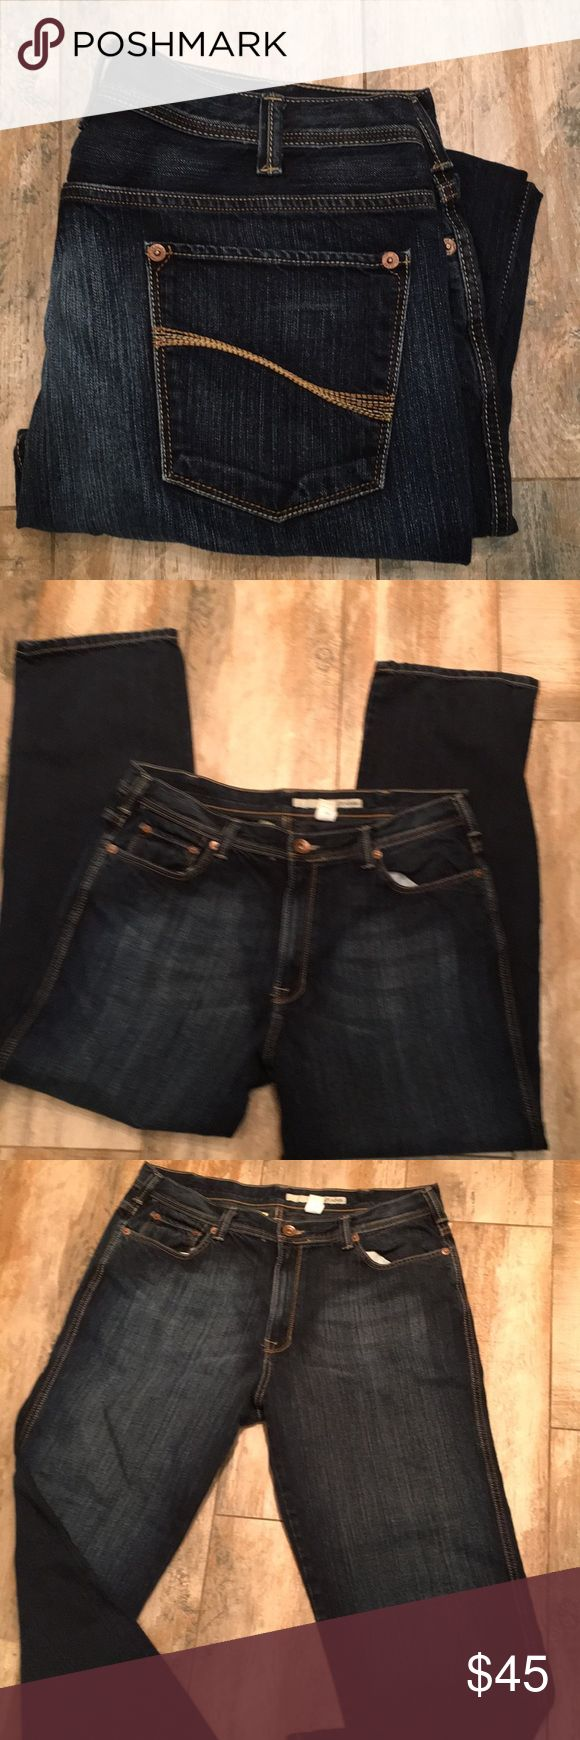 Dkny men's jeans 38x32 Awesome DKNY men's jeans. In EUC. Dkny Jeans